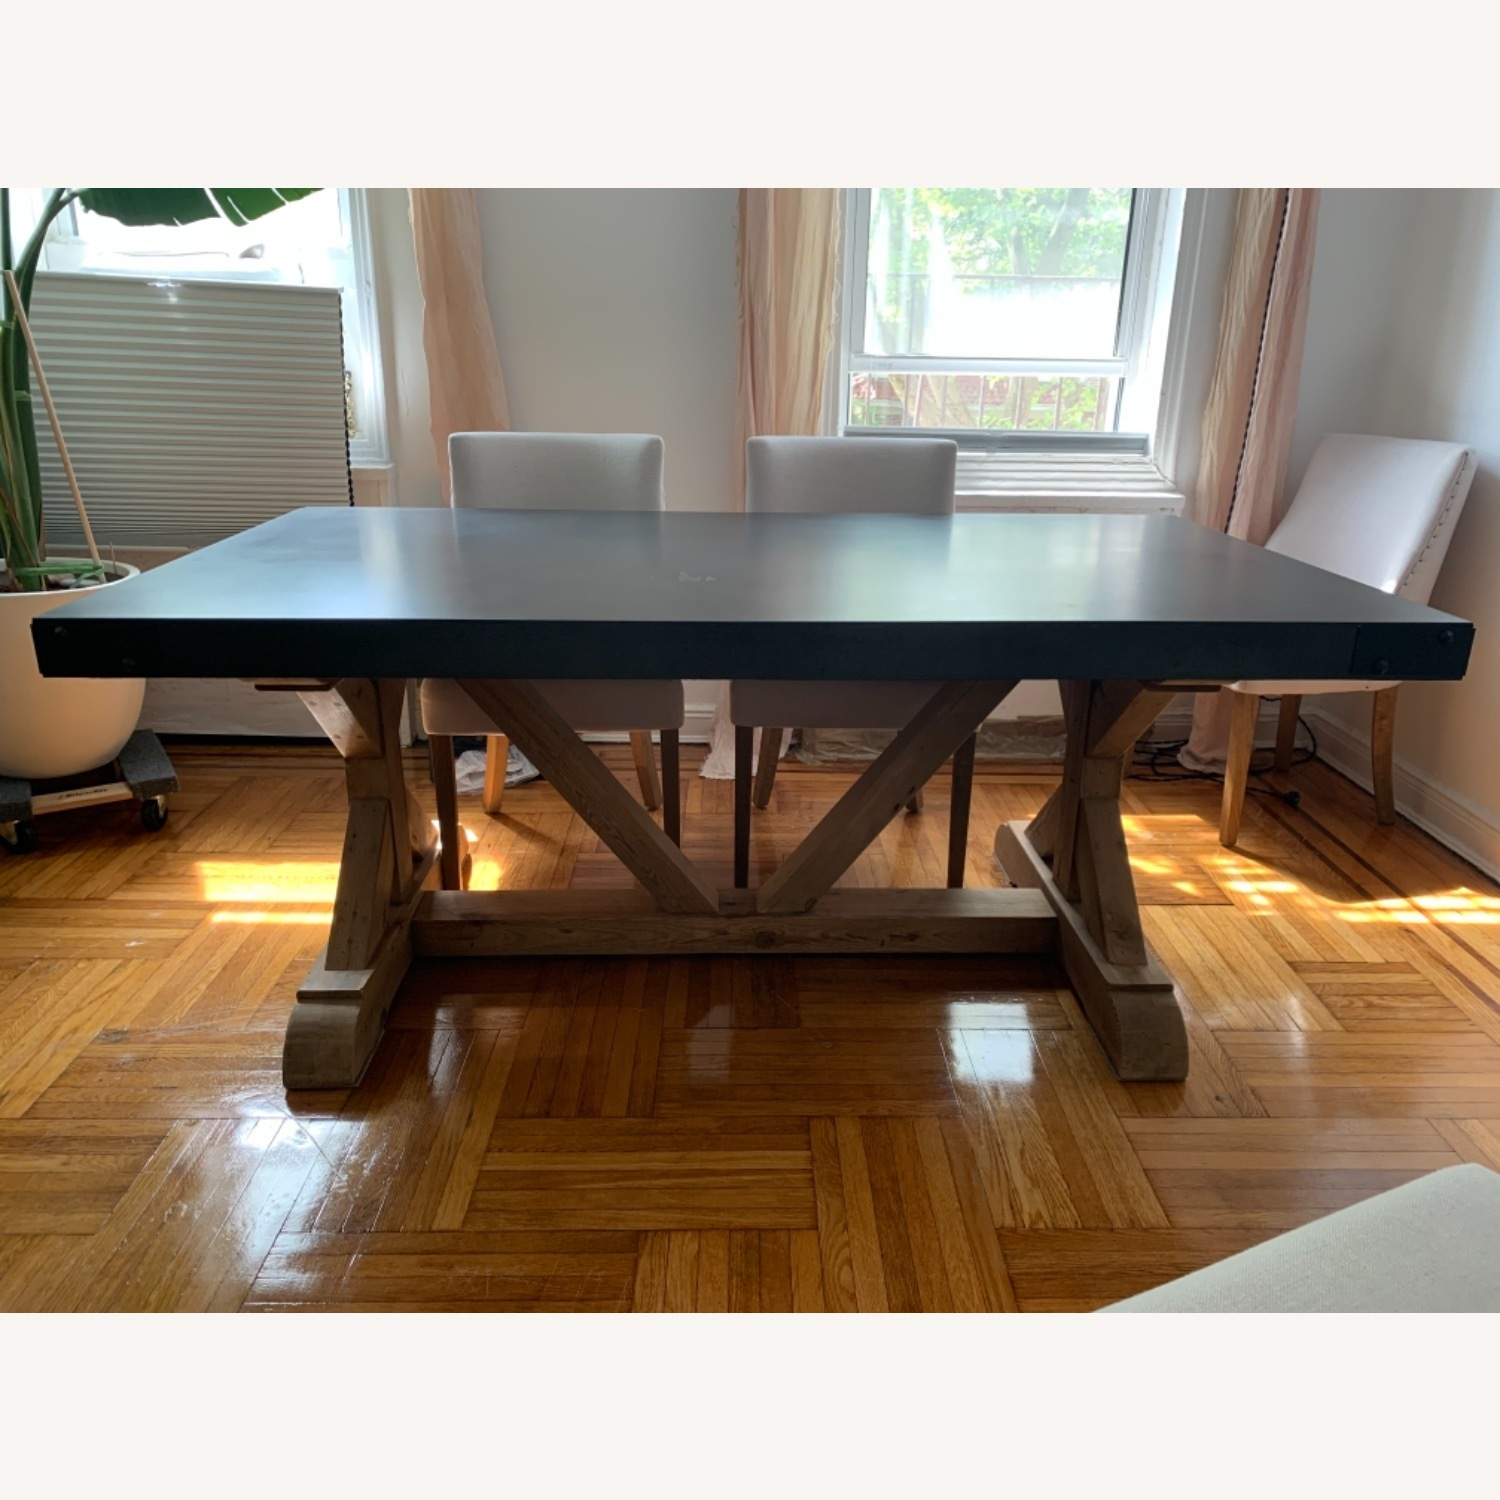 Restoration Hardware Salvaged Wood and Concrete Dining Table - image-24